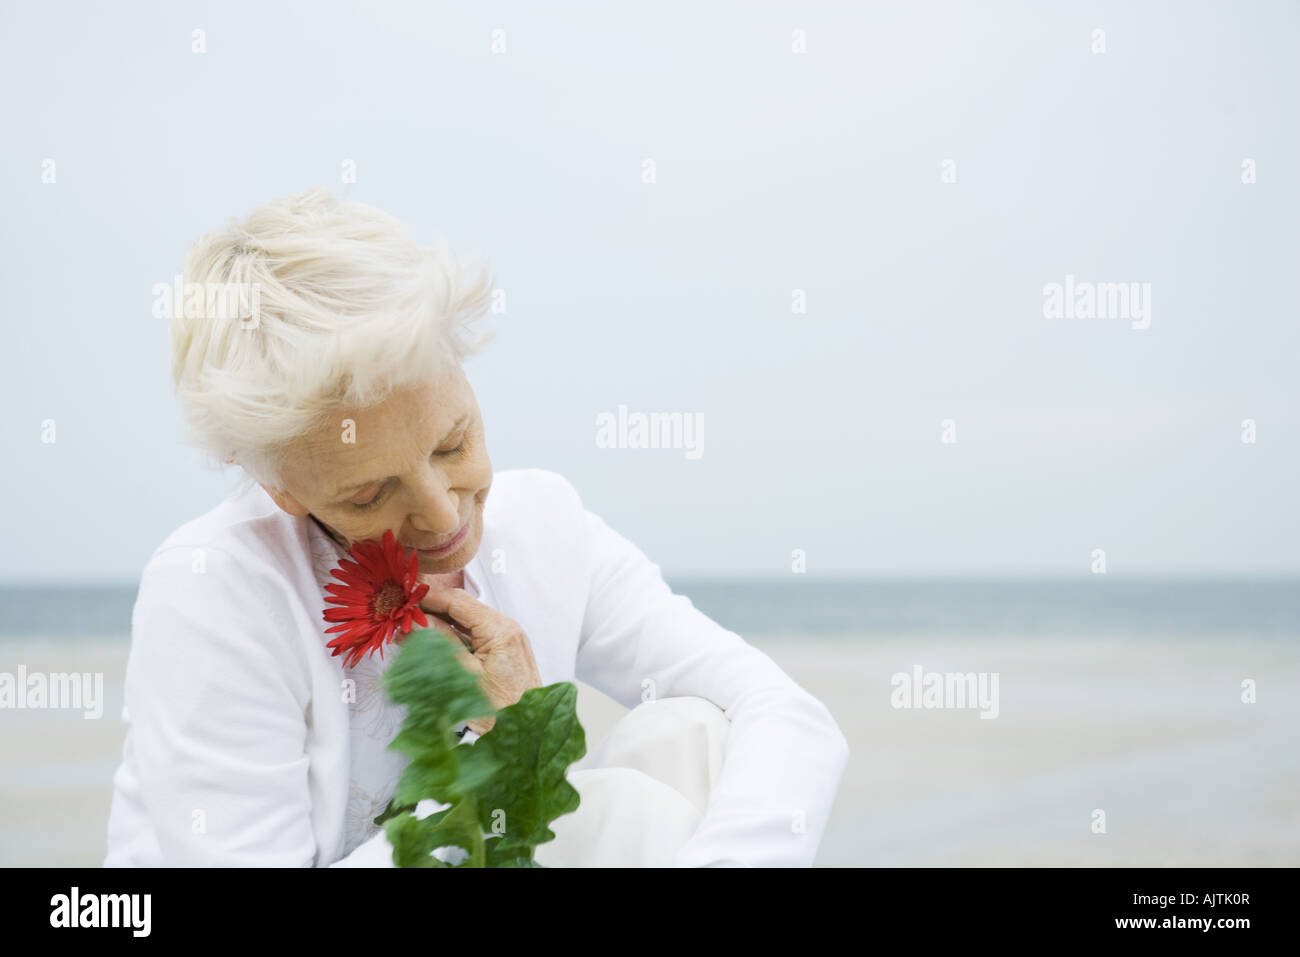 Senior woman holding up gerbera daisy to face, ocean in background, head and shoulders - Stock Image